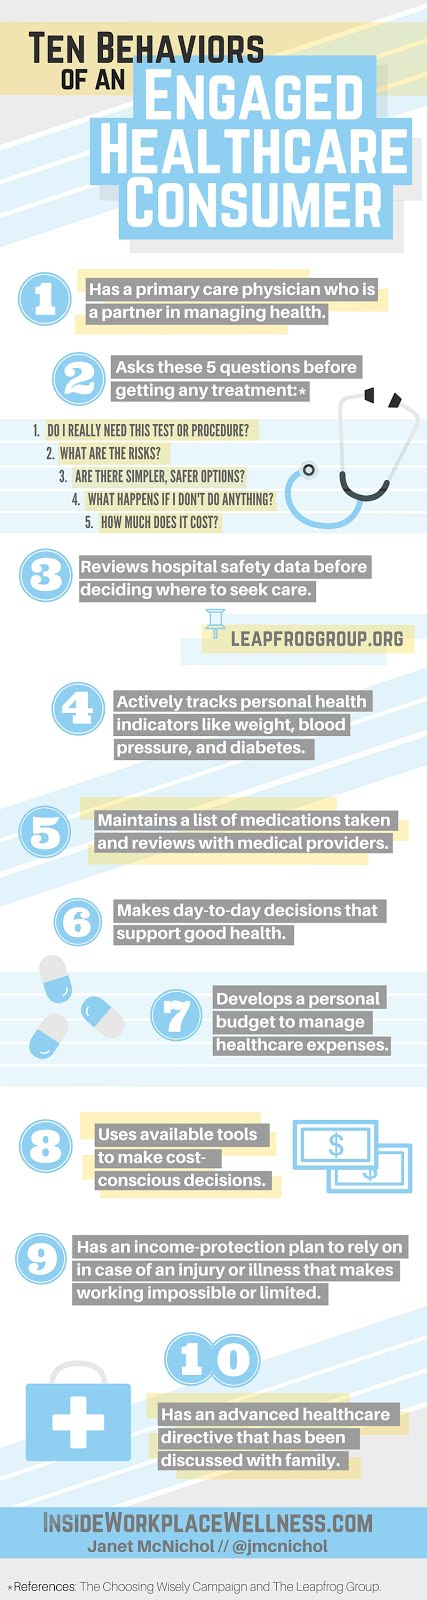 Ten Behaviors of An Engaged Healthcare Consumer